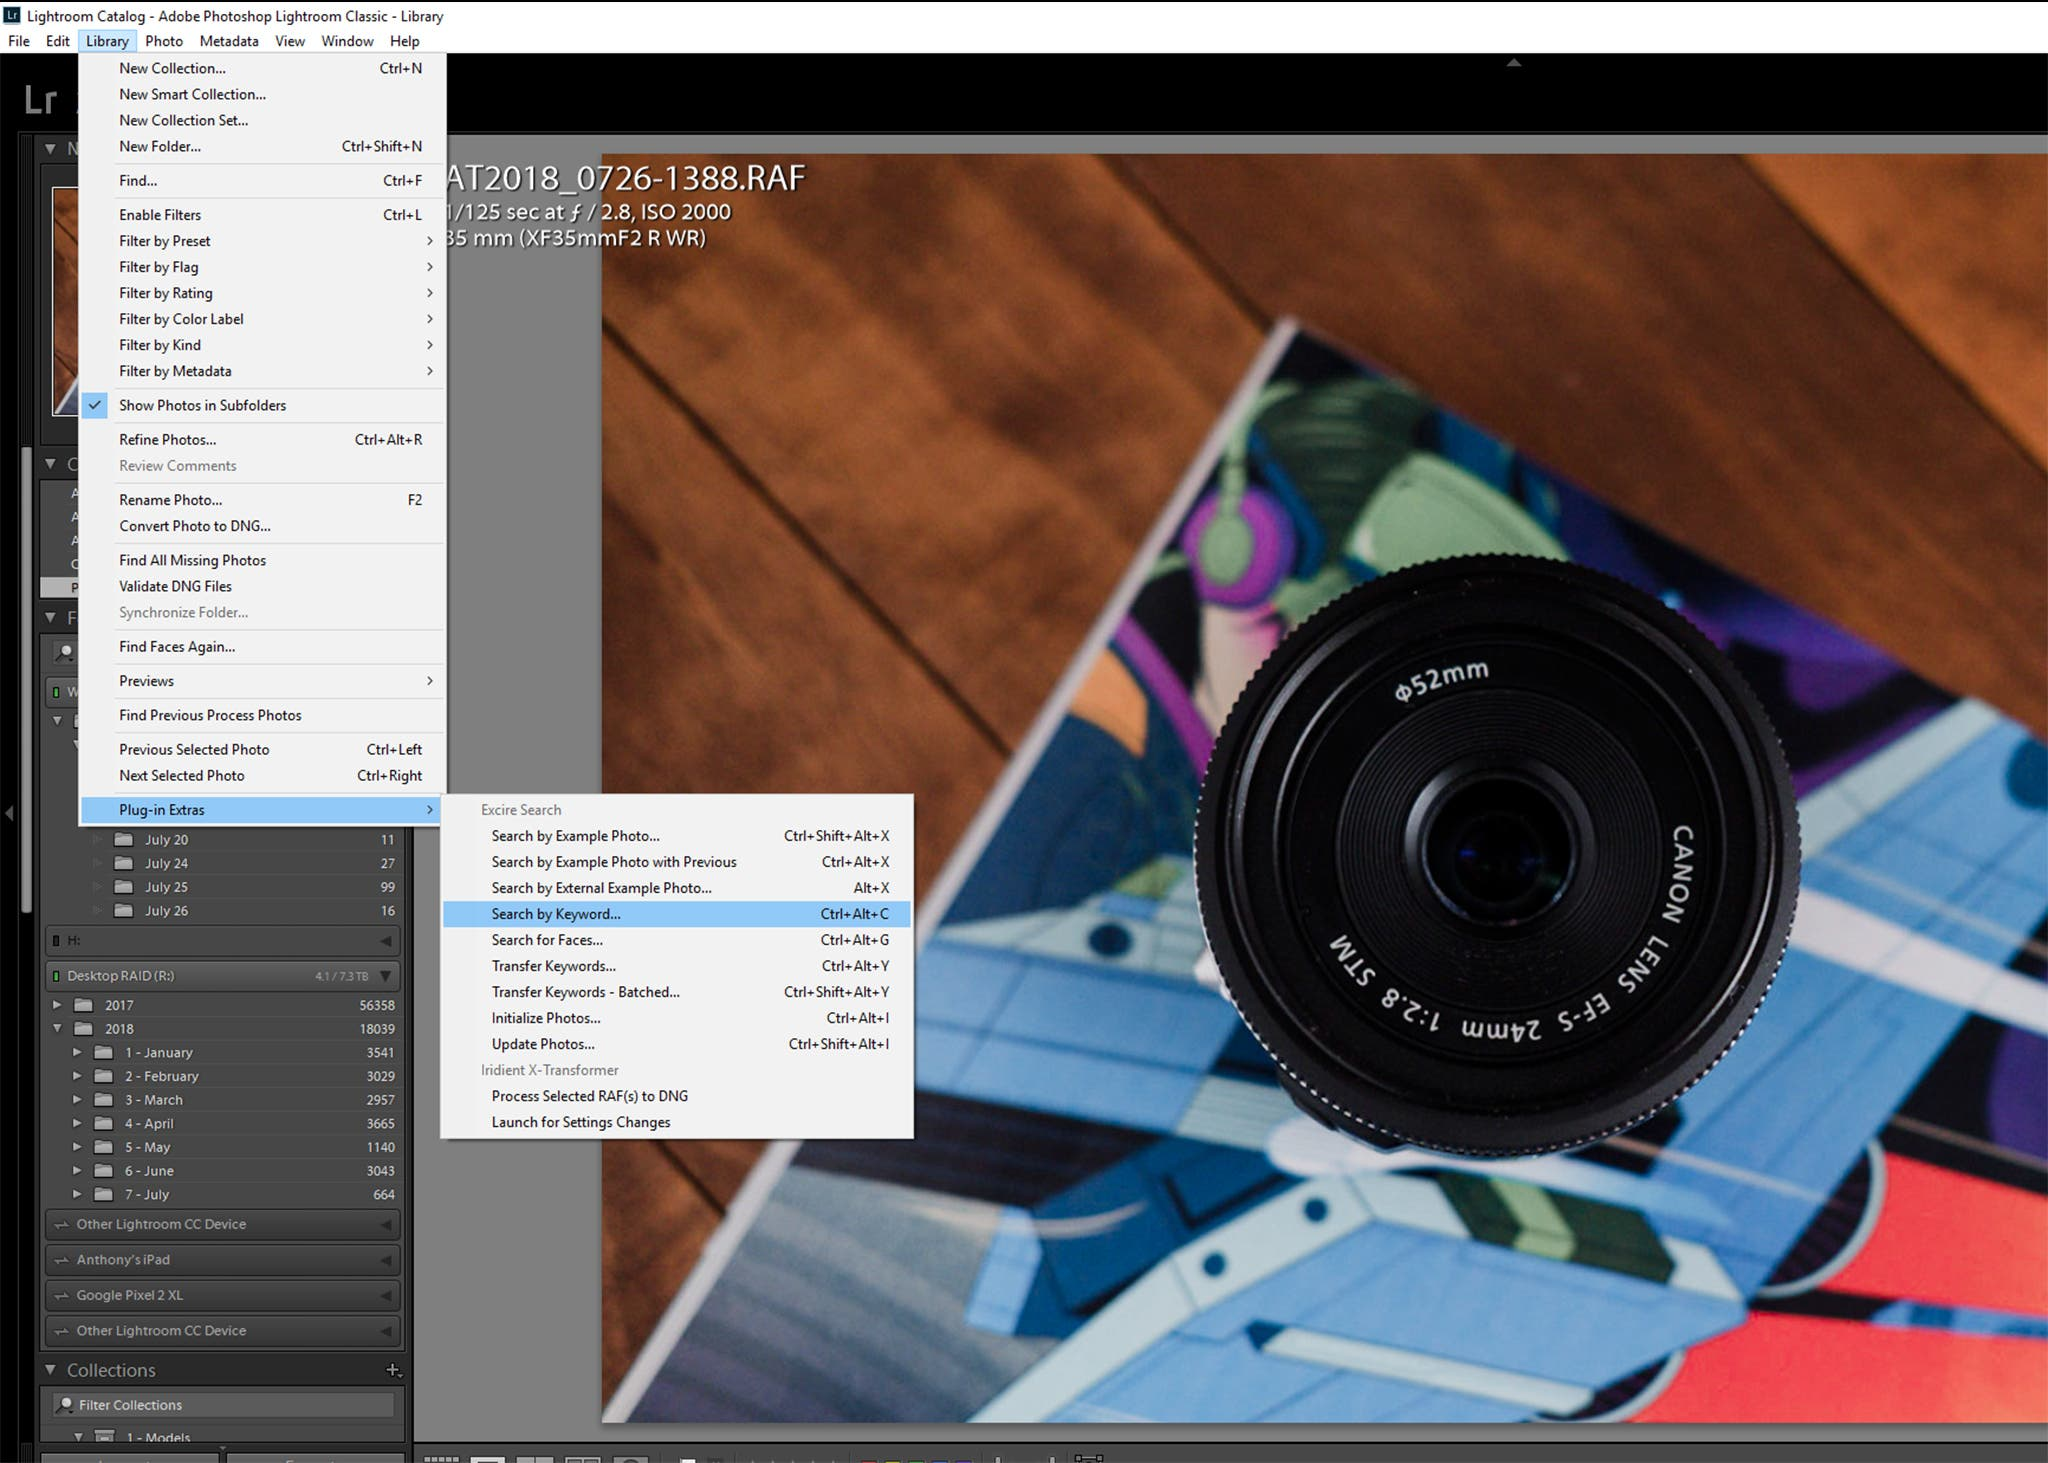 Review: Excire Search Plugin for Lightroom CC Classic (AI